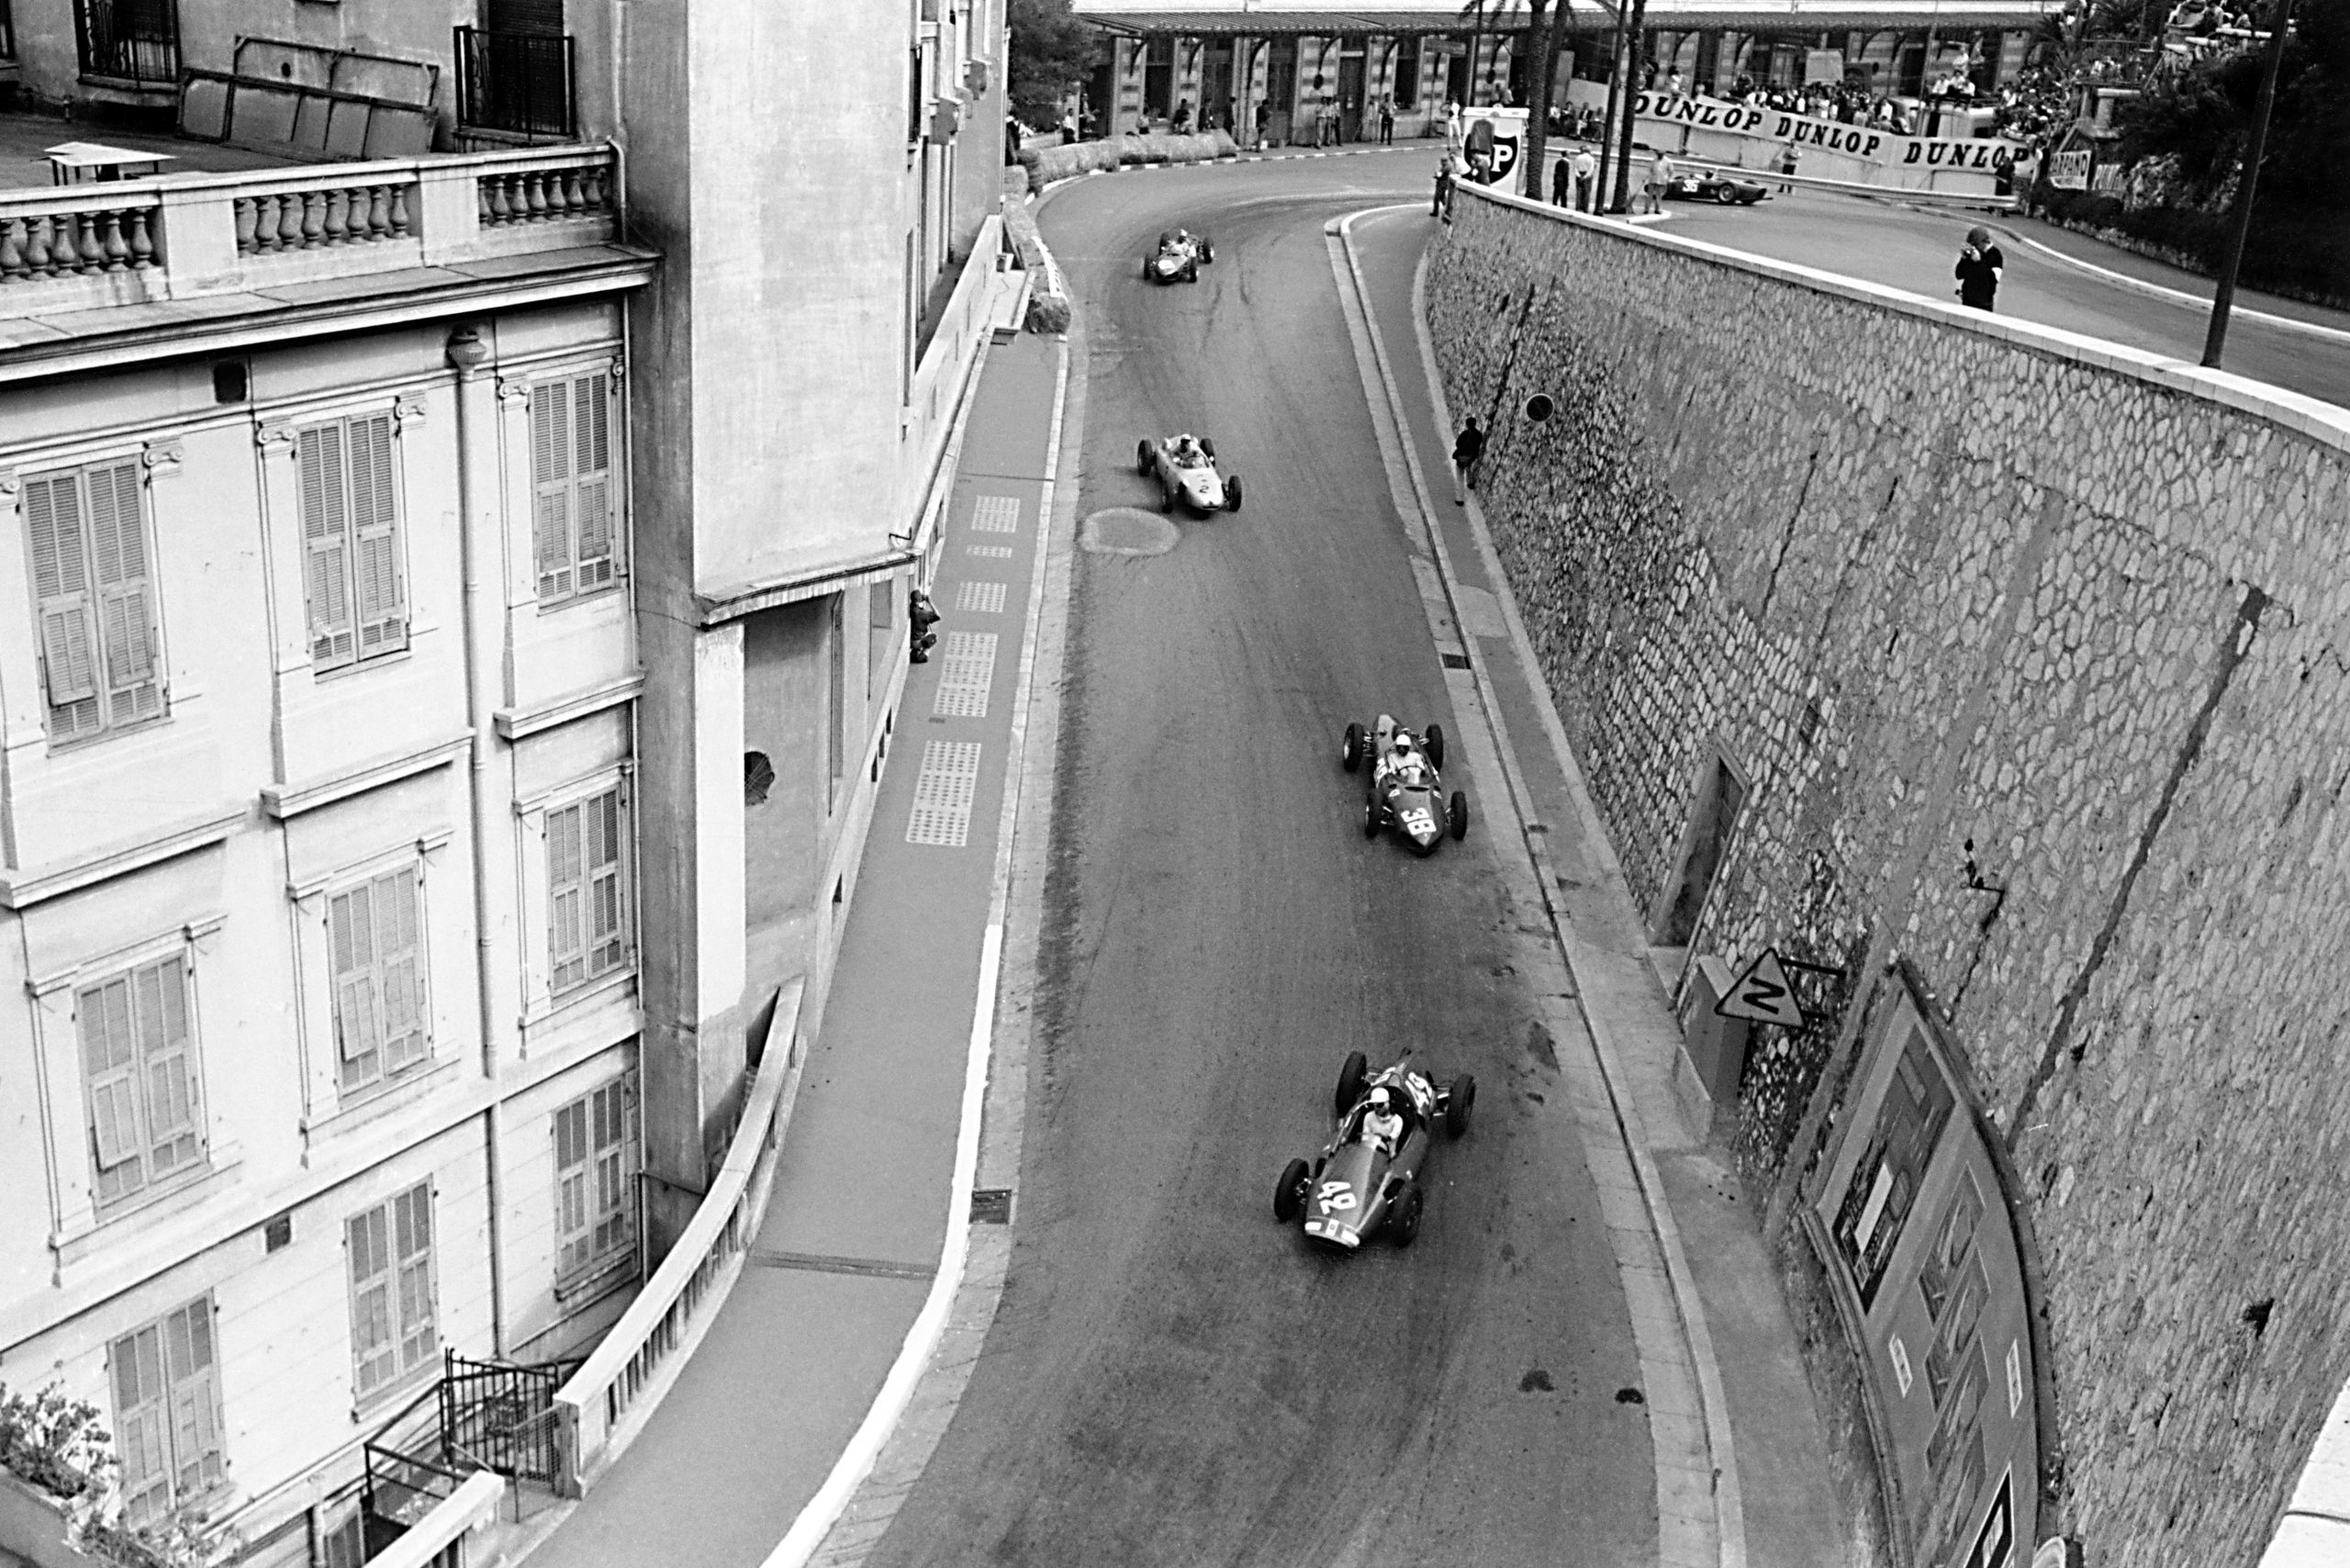 Maurice Trintignant (Cooper T51-Maserati) leads Phil Hill (Ferrari 156), Jo Bonnier (Porsche 787), Wolfgang von Trips and Richie Ginther (both Ferrari 156) out of the Old Station Hairpin.